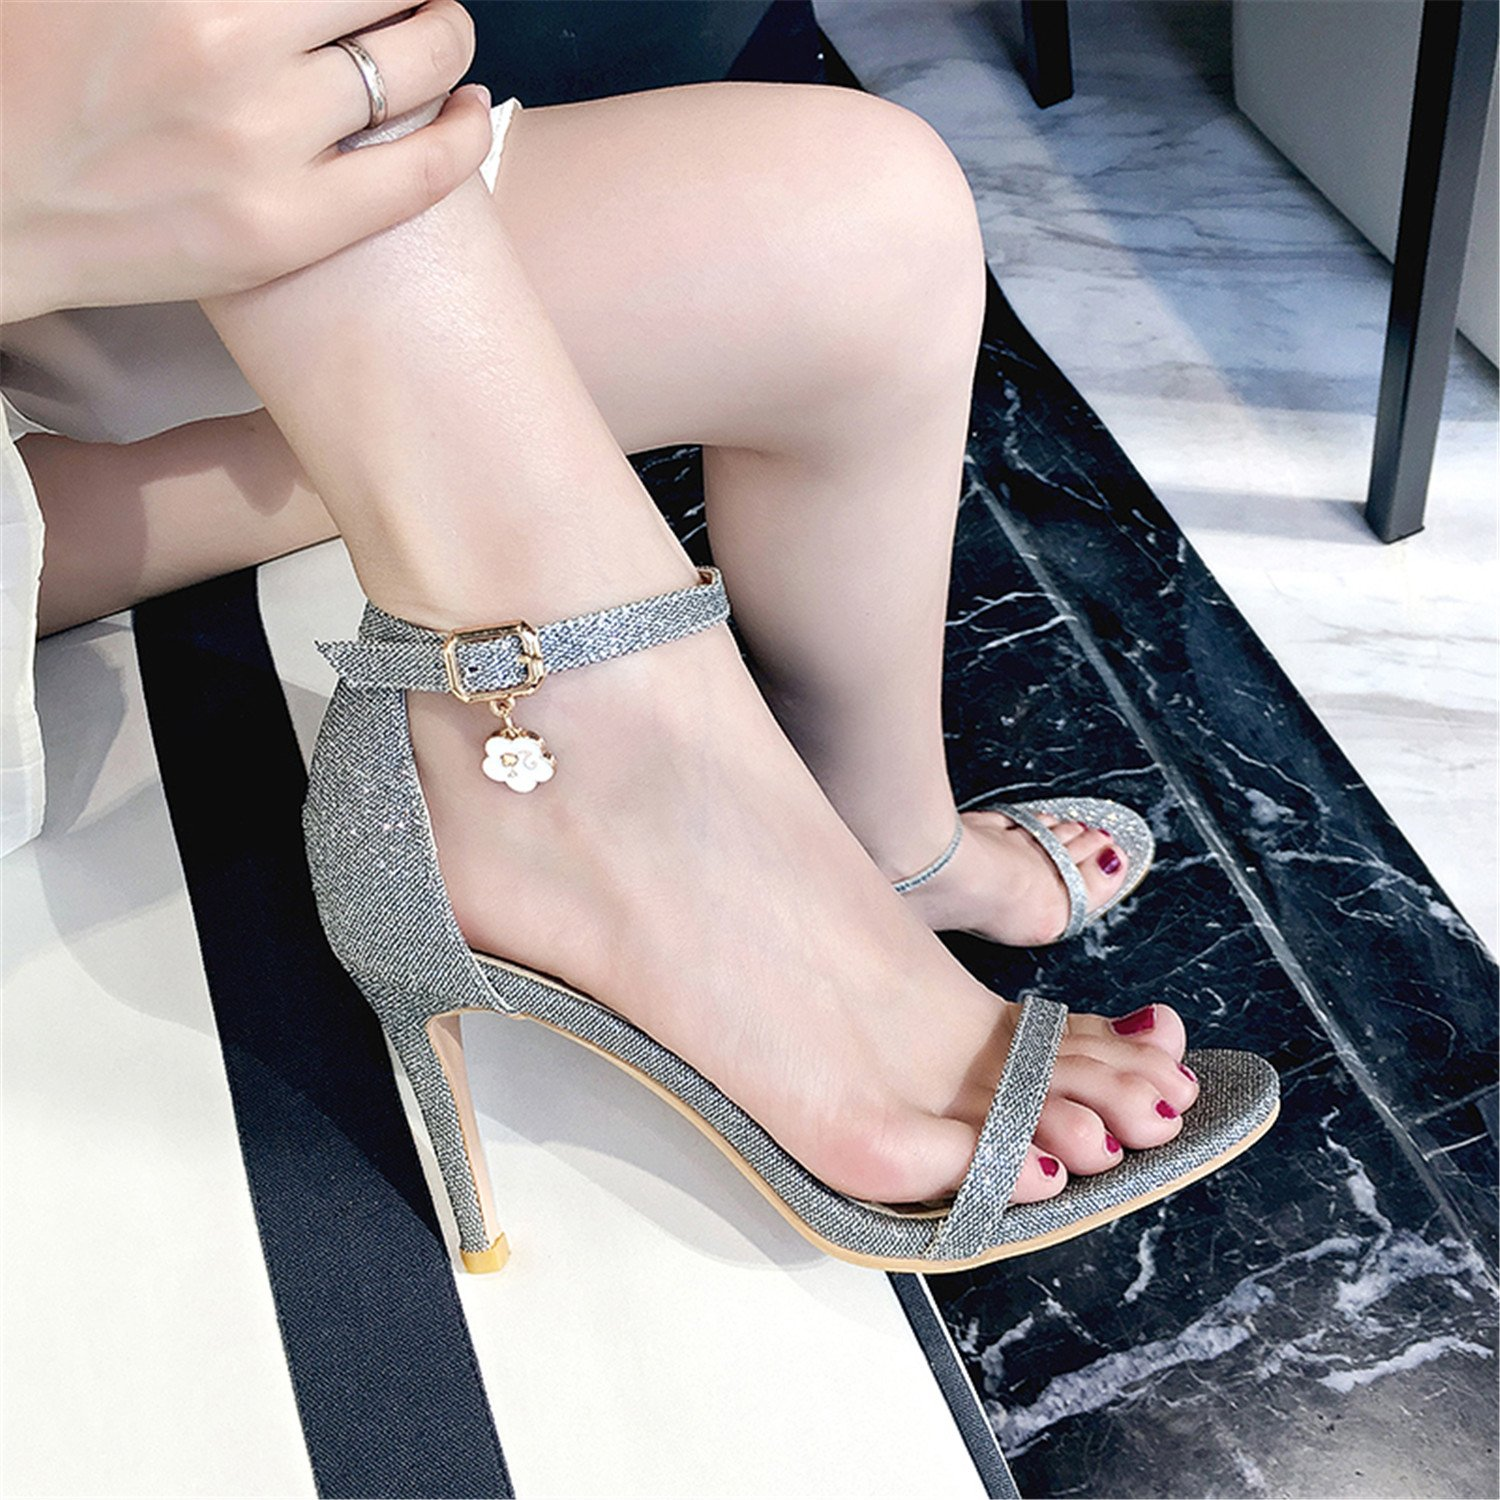 Twinkle UU 2018 Summer Women Sandals Open Toe Shoes Bling Footwear 2018 UU Party Shoes Big Size 47 B07DQLB789 6 M US|Beige Pu 5c37eb